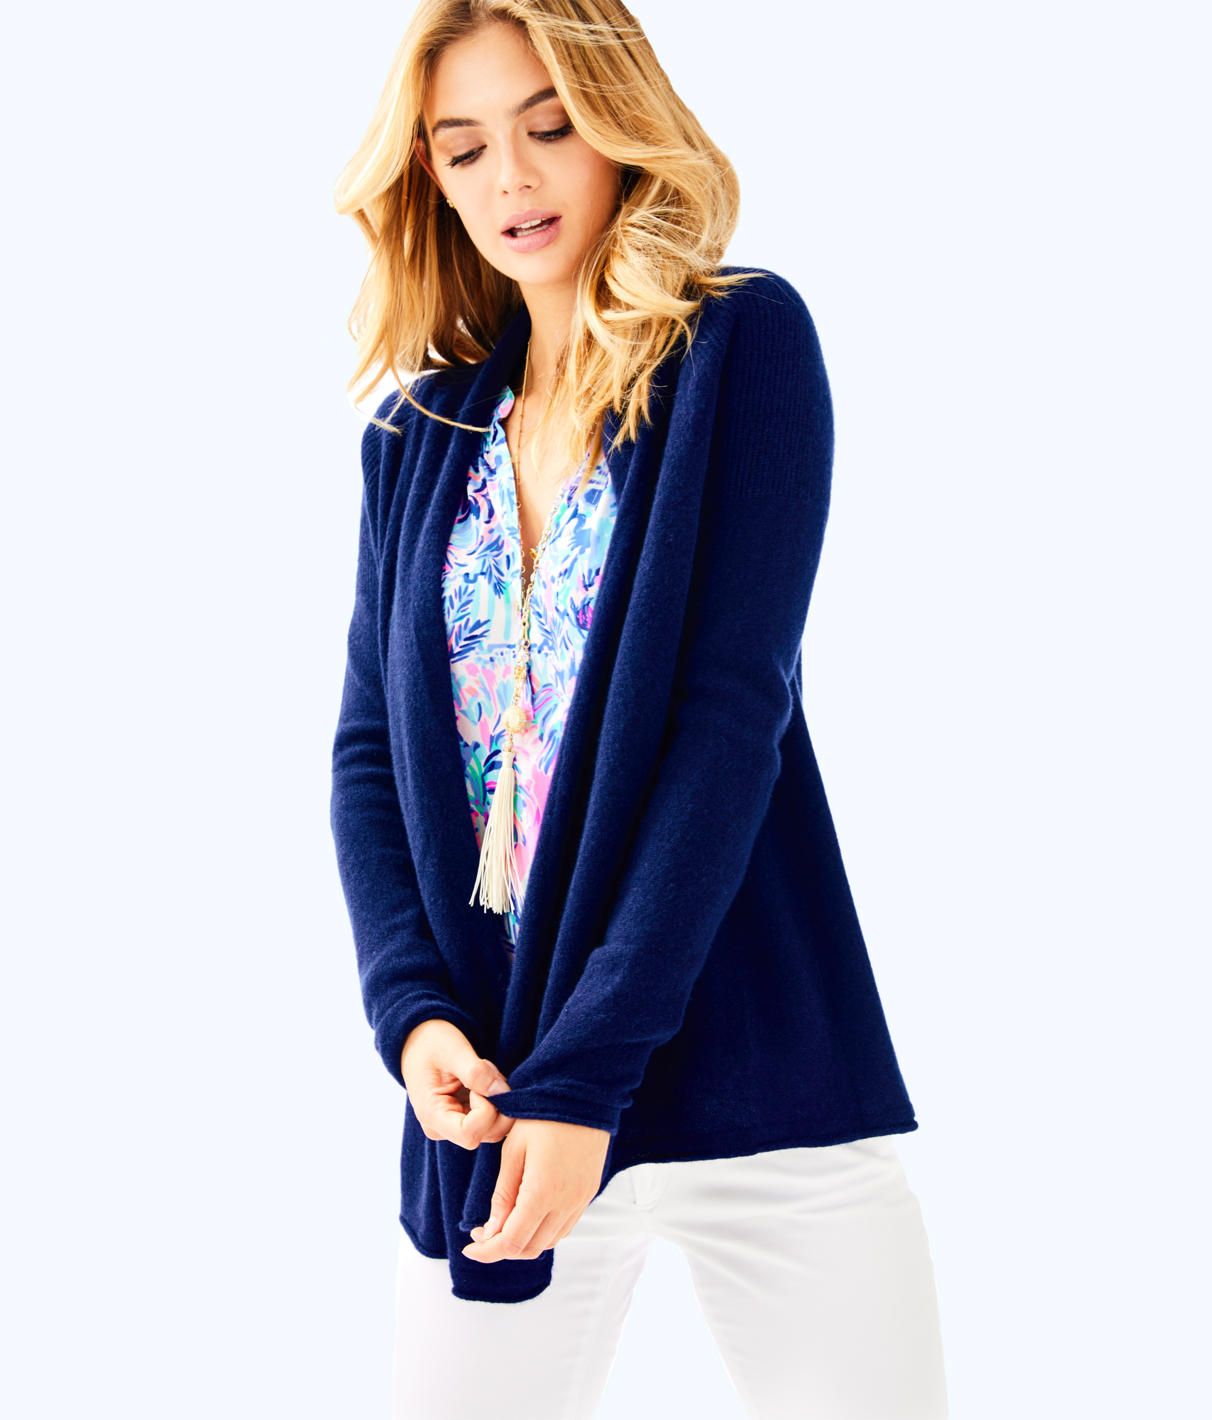 Lilly Pulitzer Seabrook Cashmere Cardigan